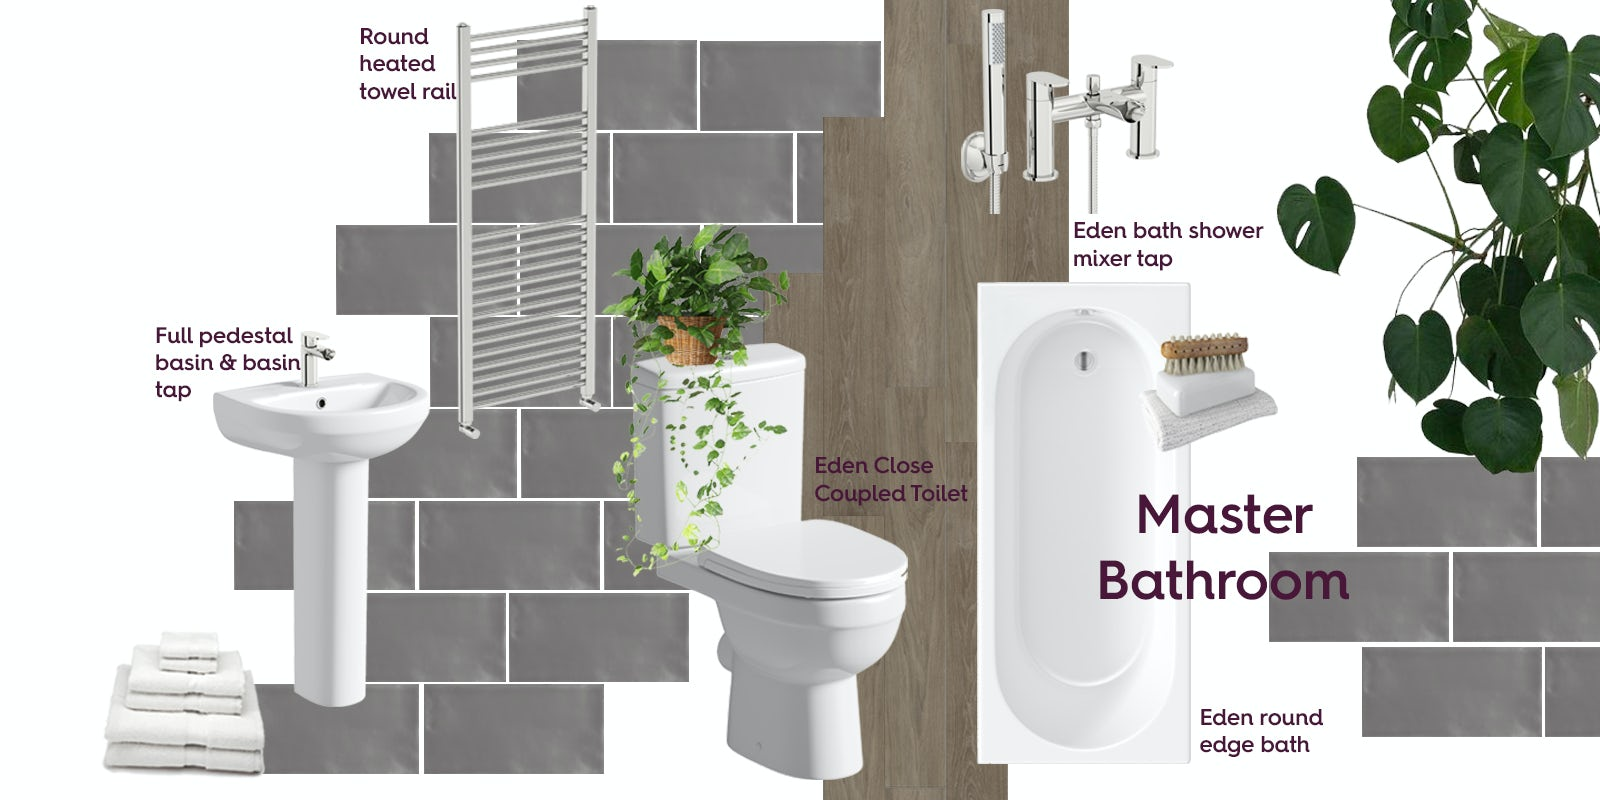 Master bathroom with a bath mood board